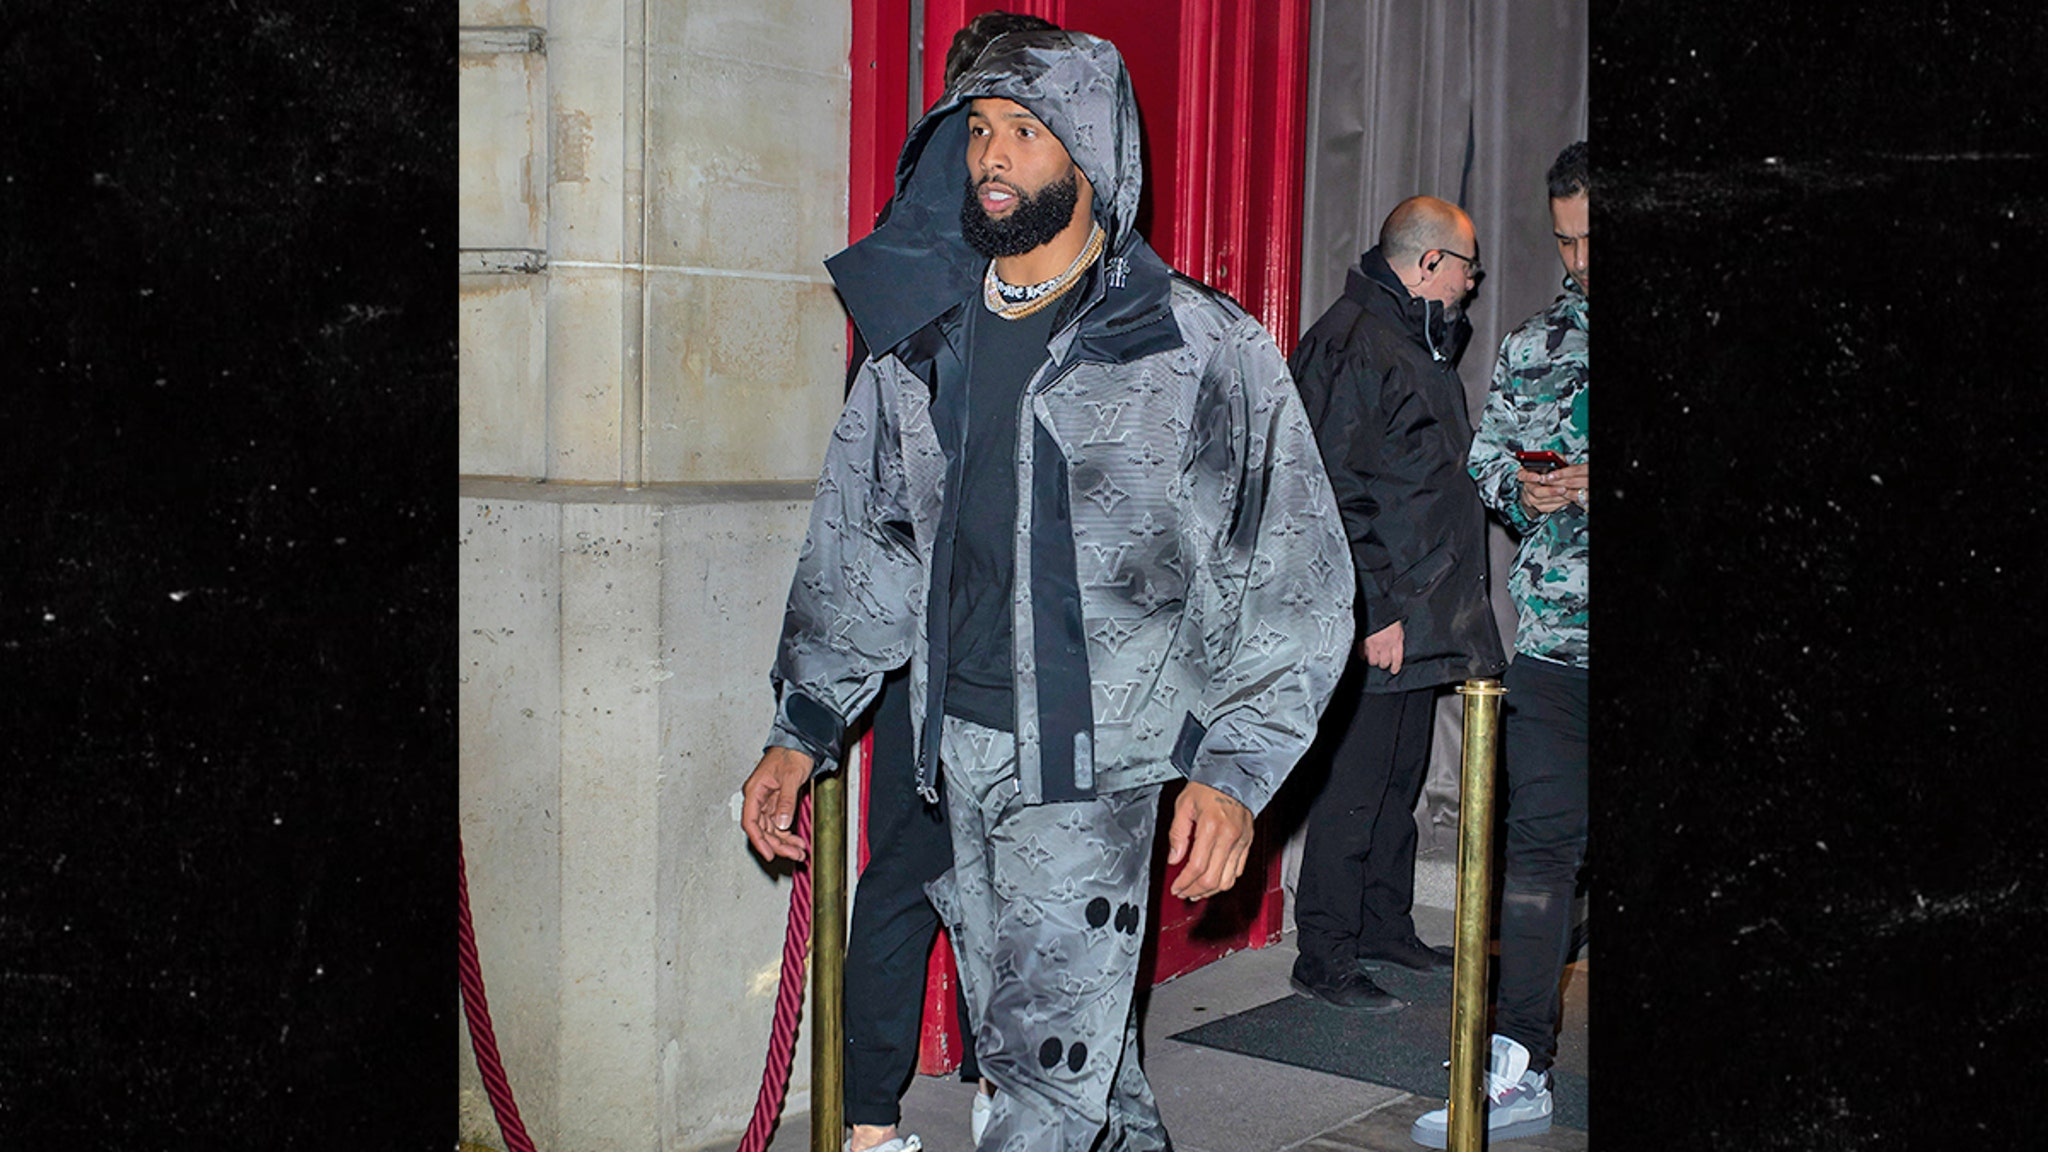 Odell Beckham Decked Out In $7,000 Louis Vuitton Fit At Paris Fashion Week